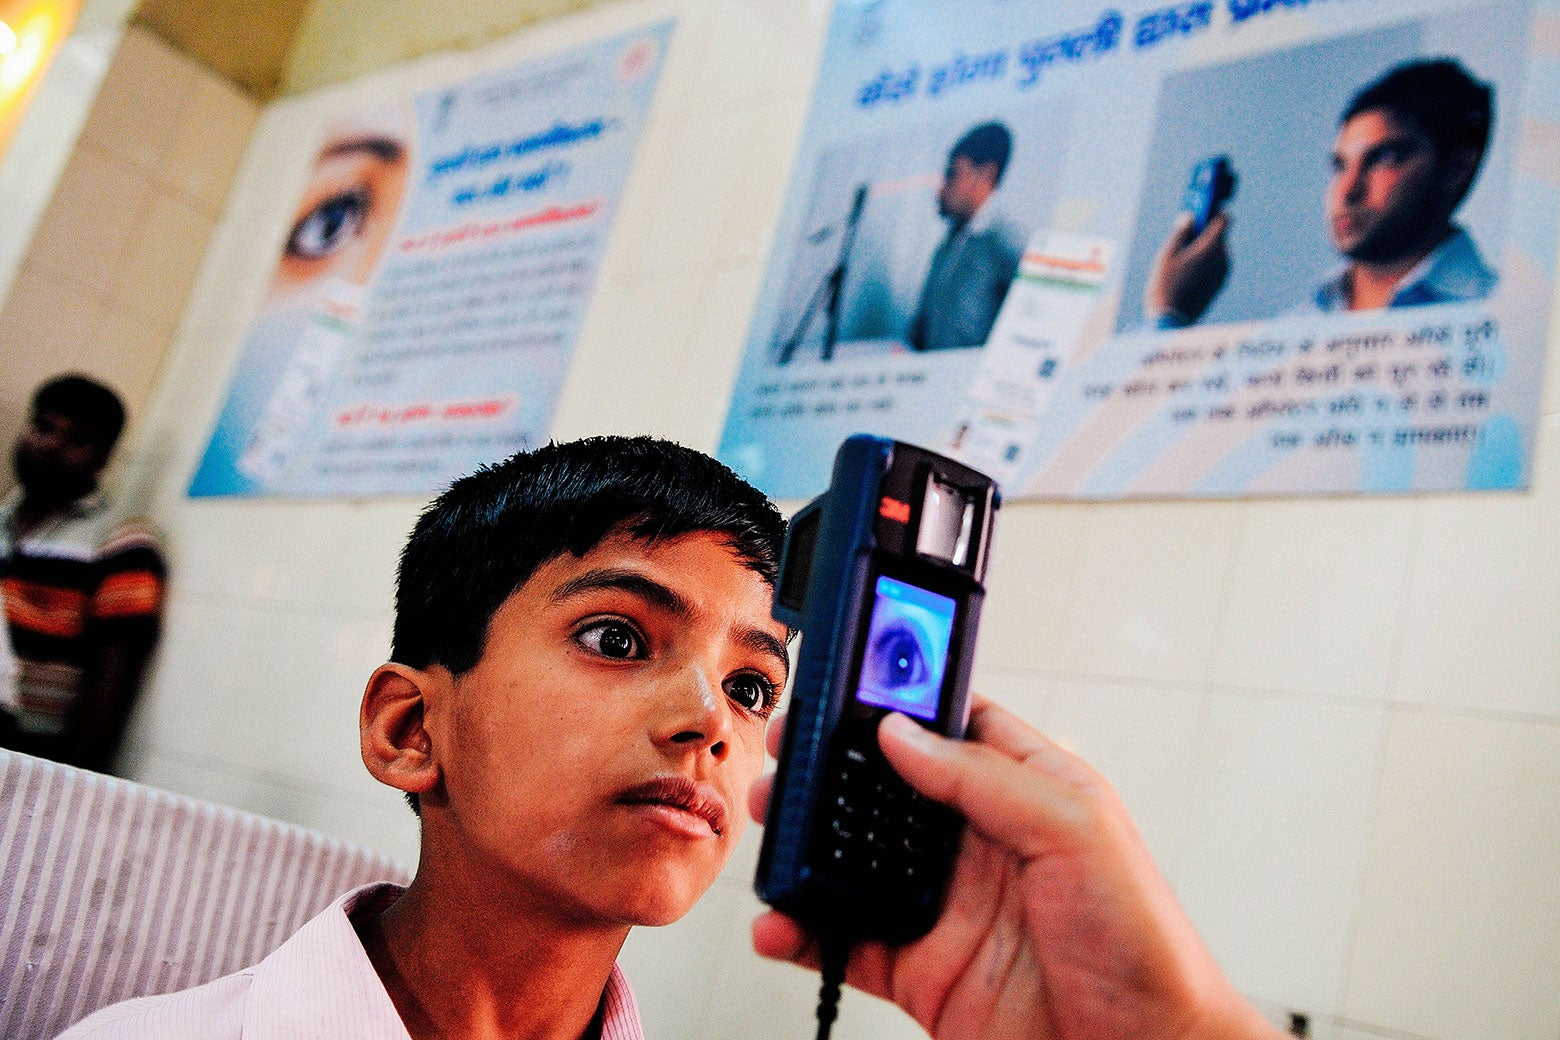 A boy has his iris scanned for the Aadhaar identity system on April 12, 2013 in New Delhi.